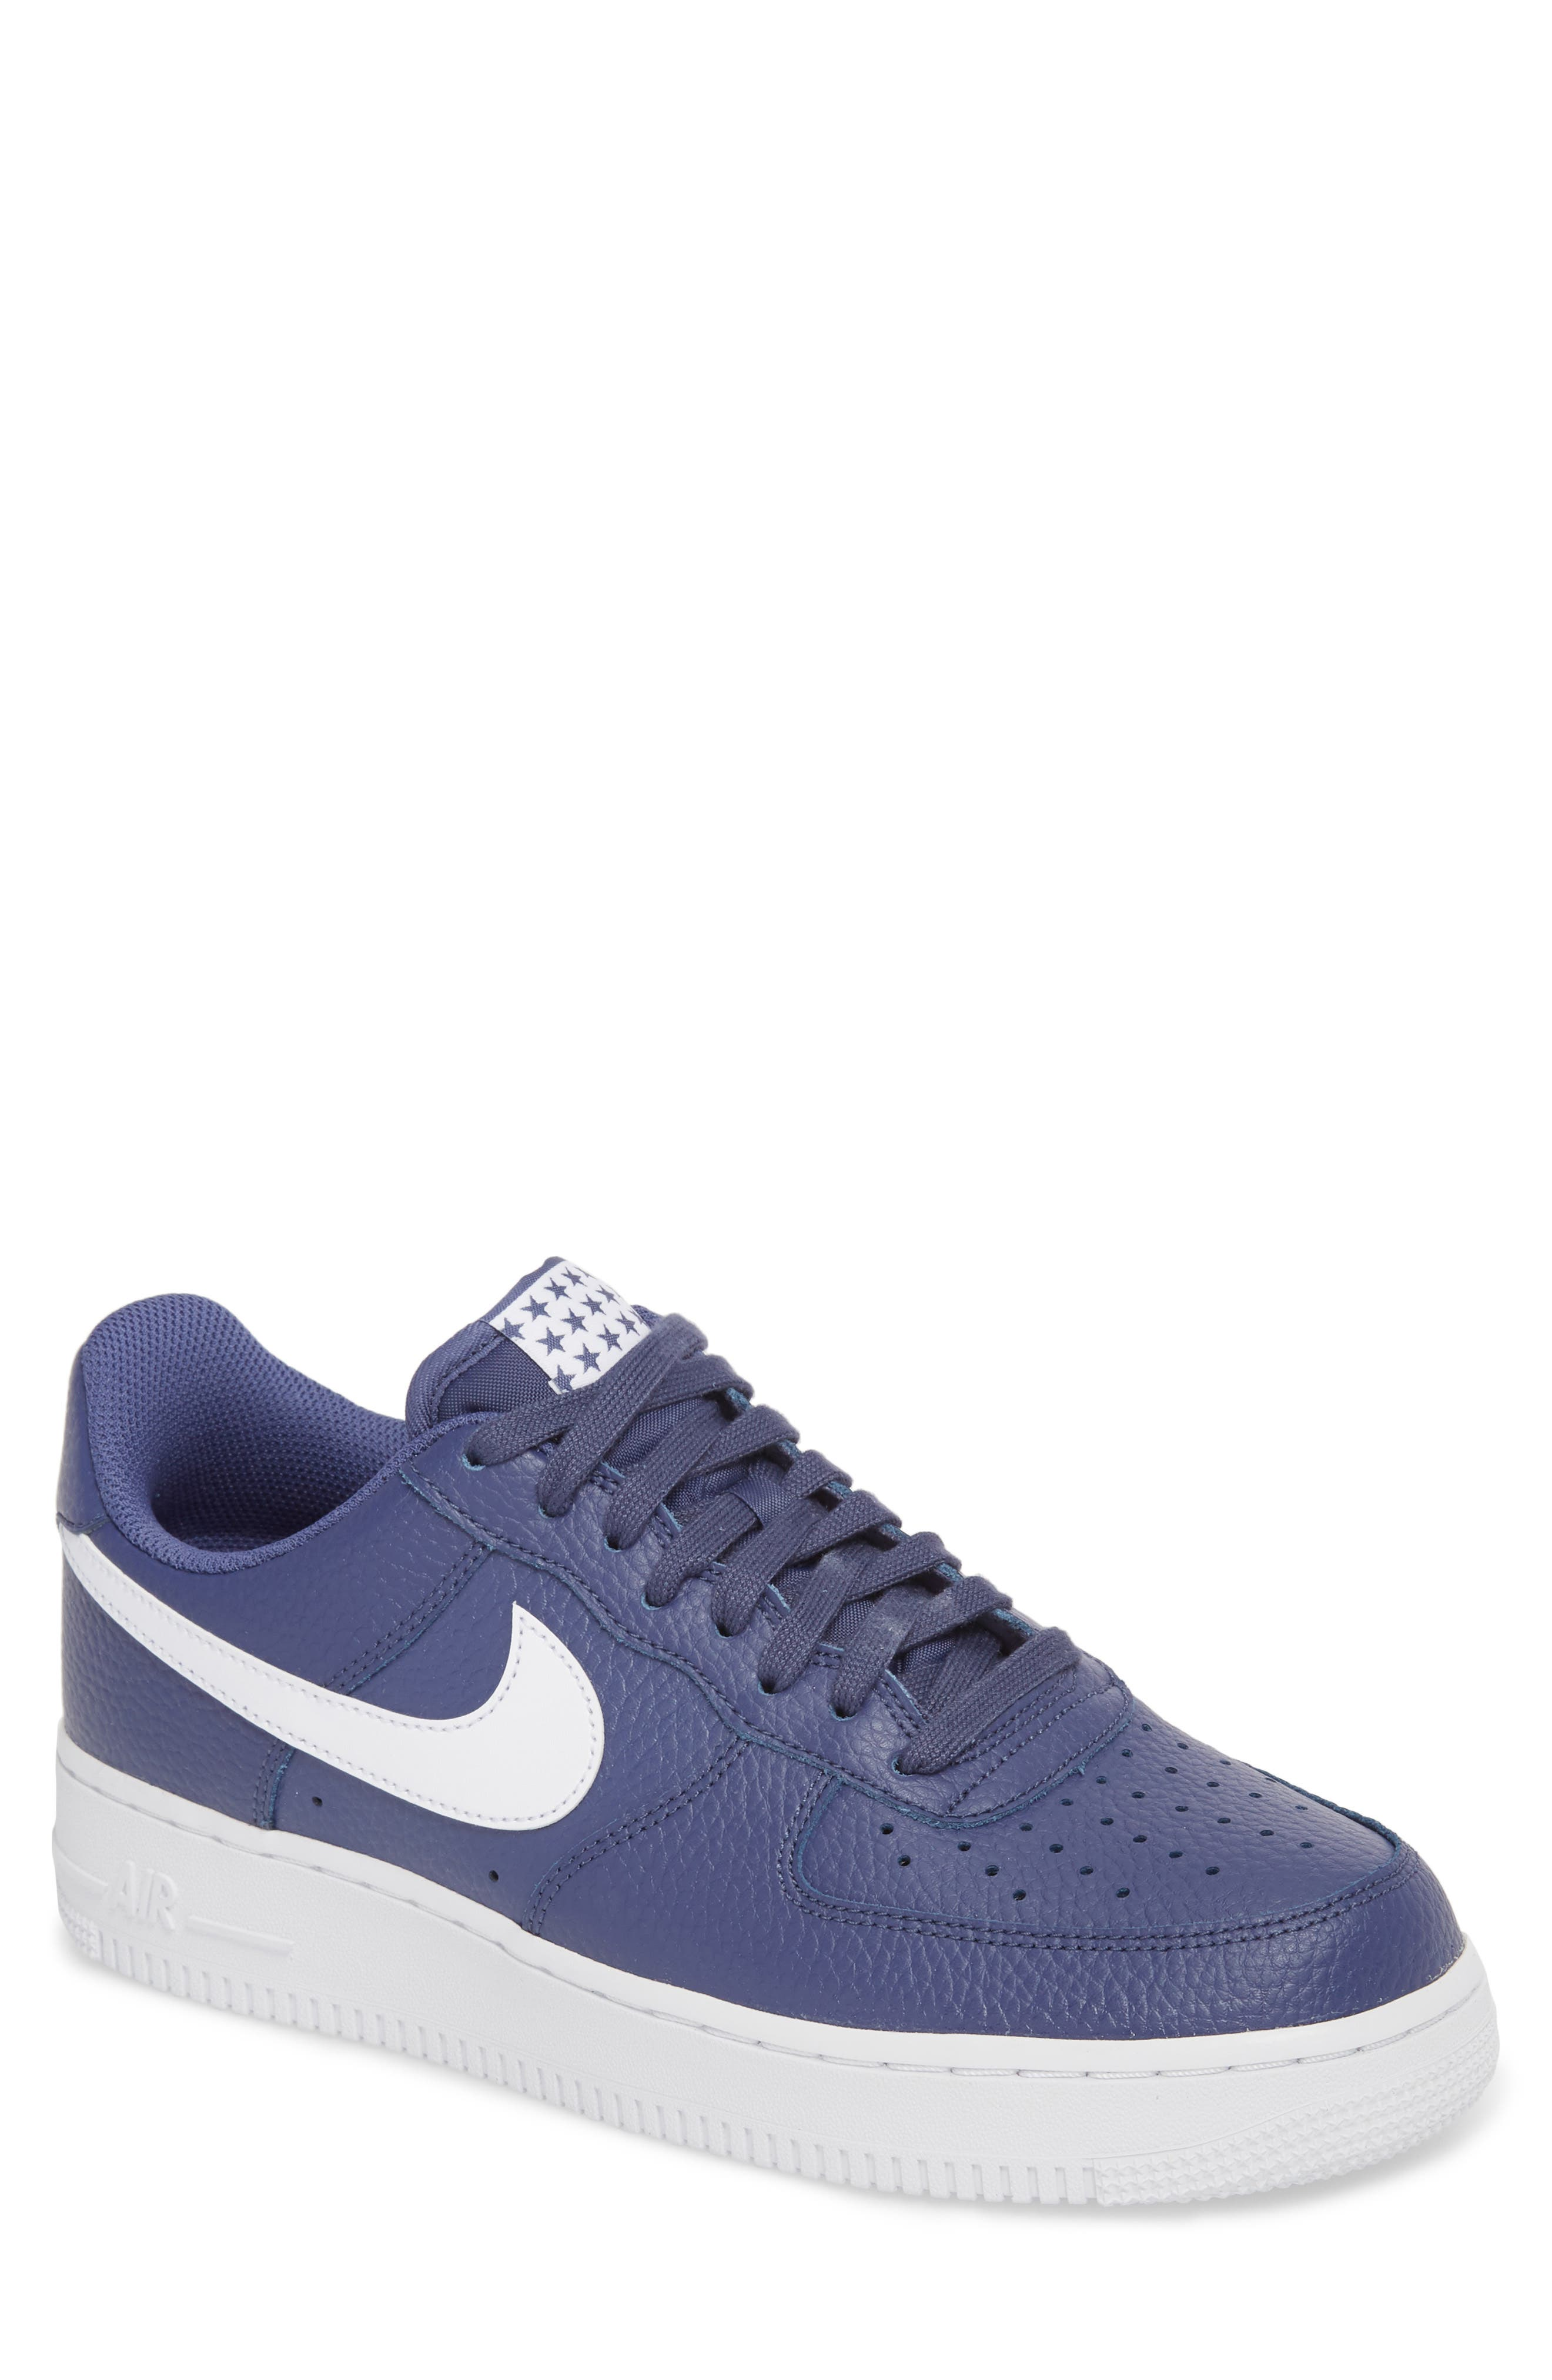 Main Image - Nike Air Force 1 07 Sneaker (Men)